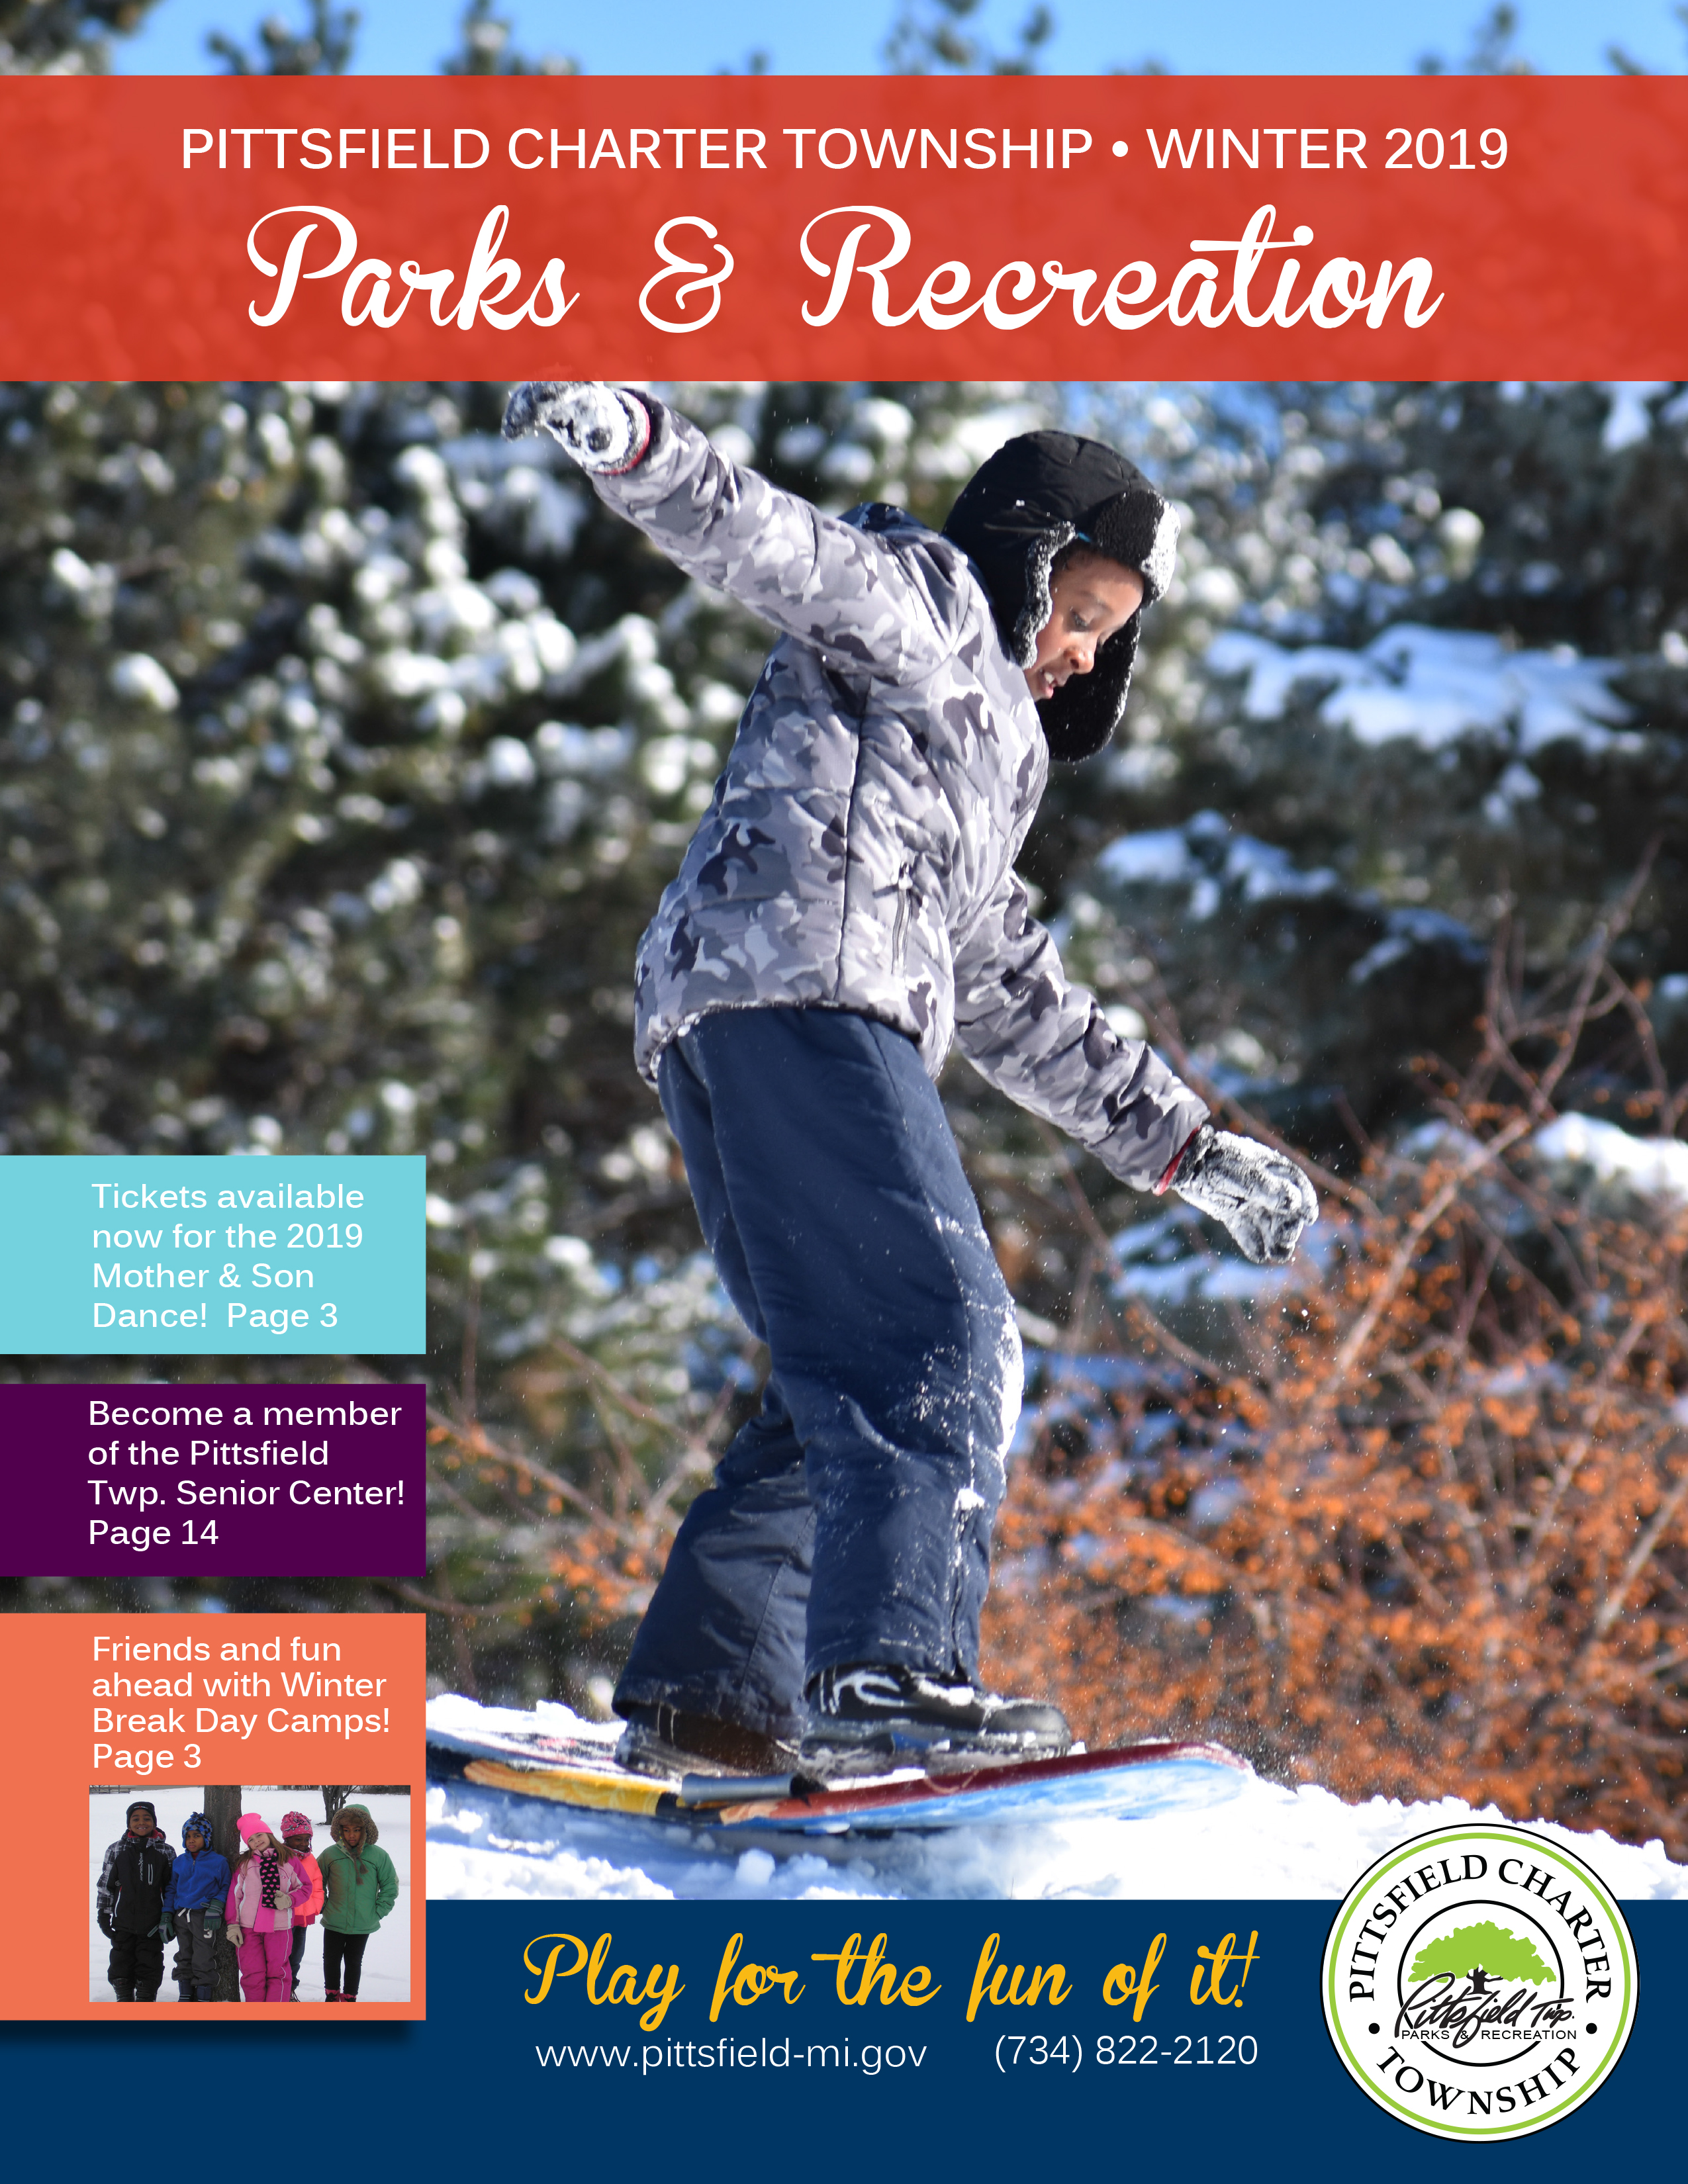 Parks and Recreation Brochure